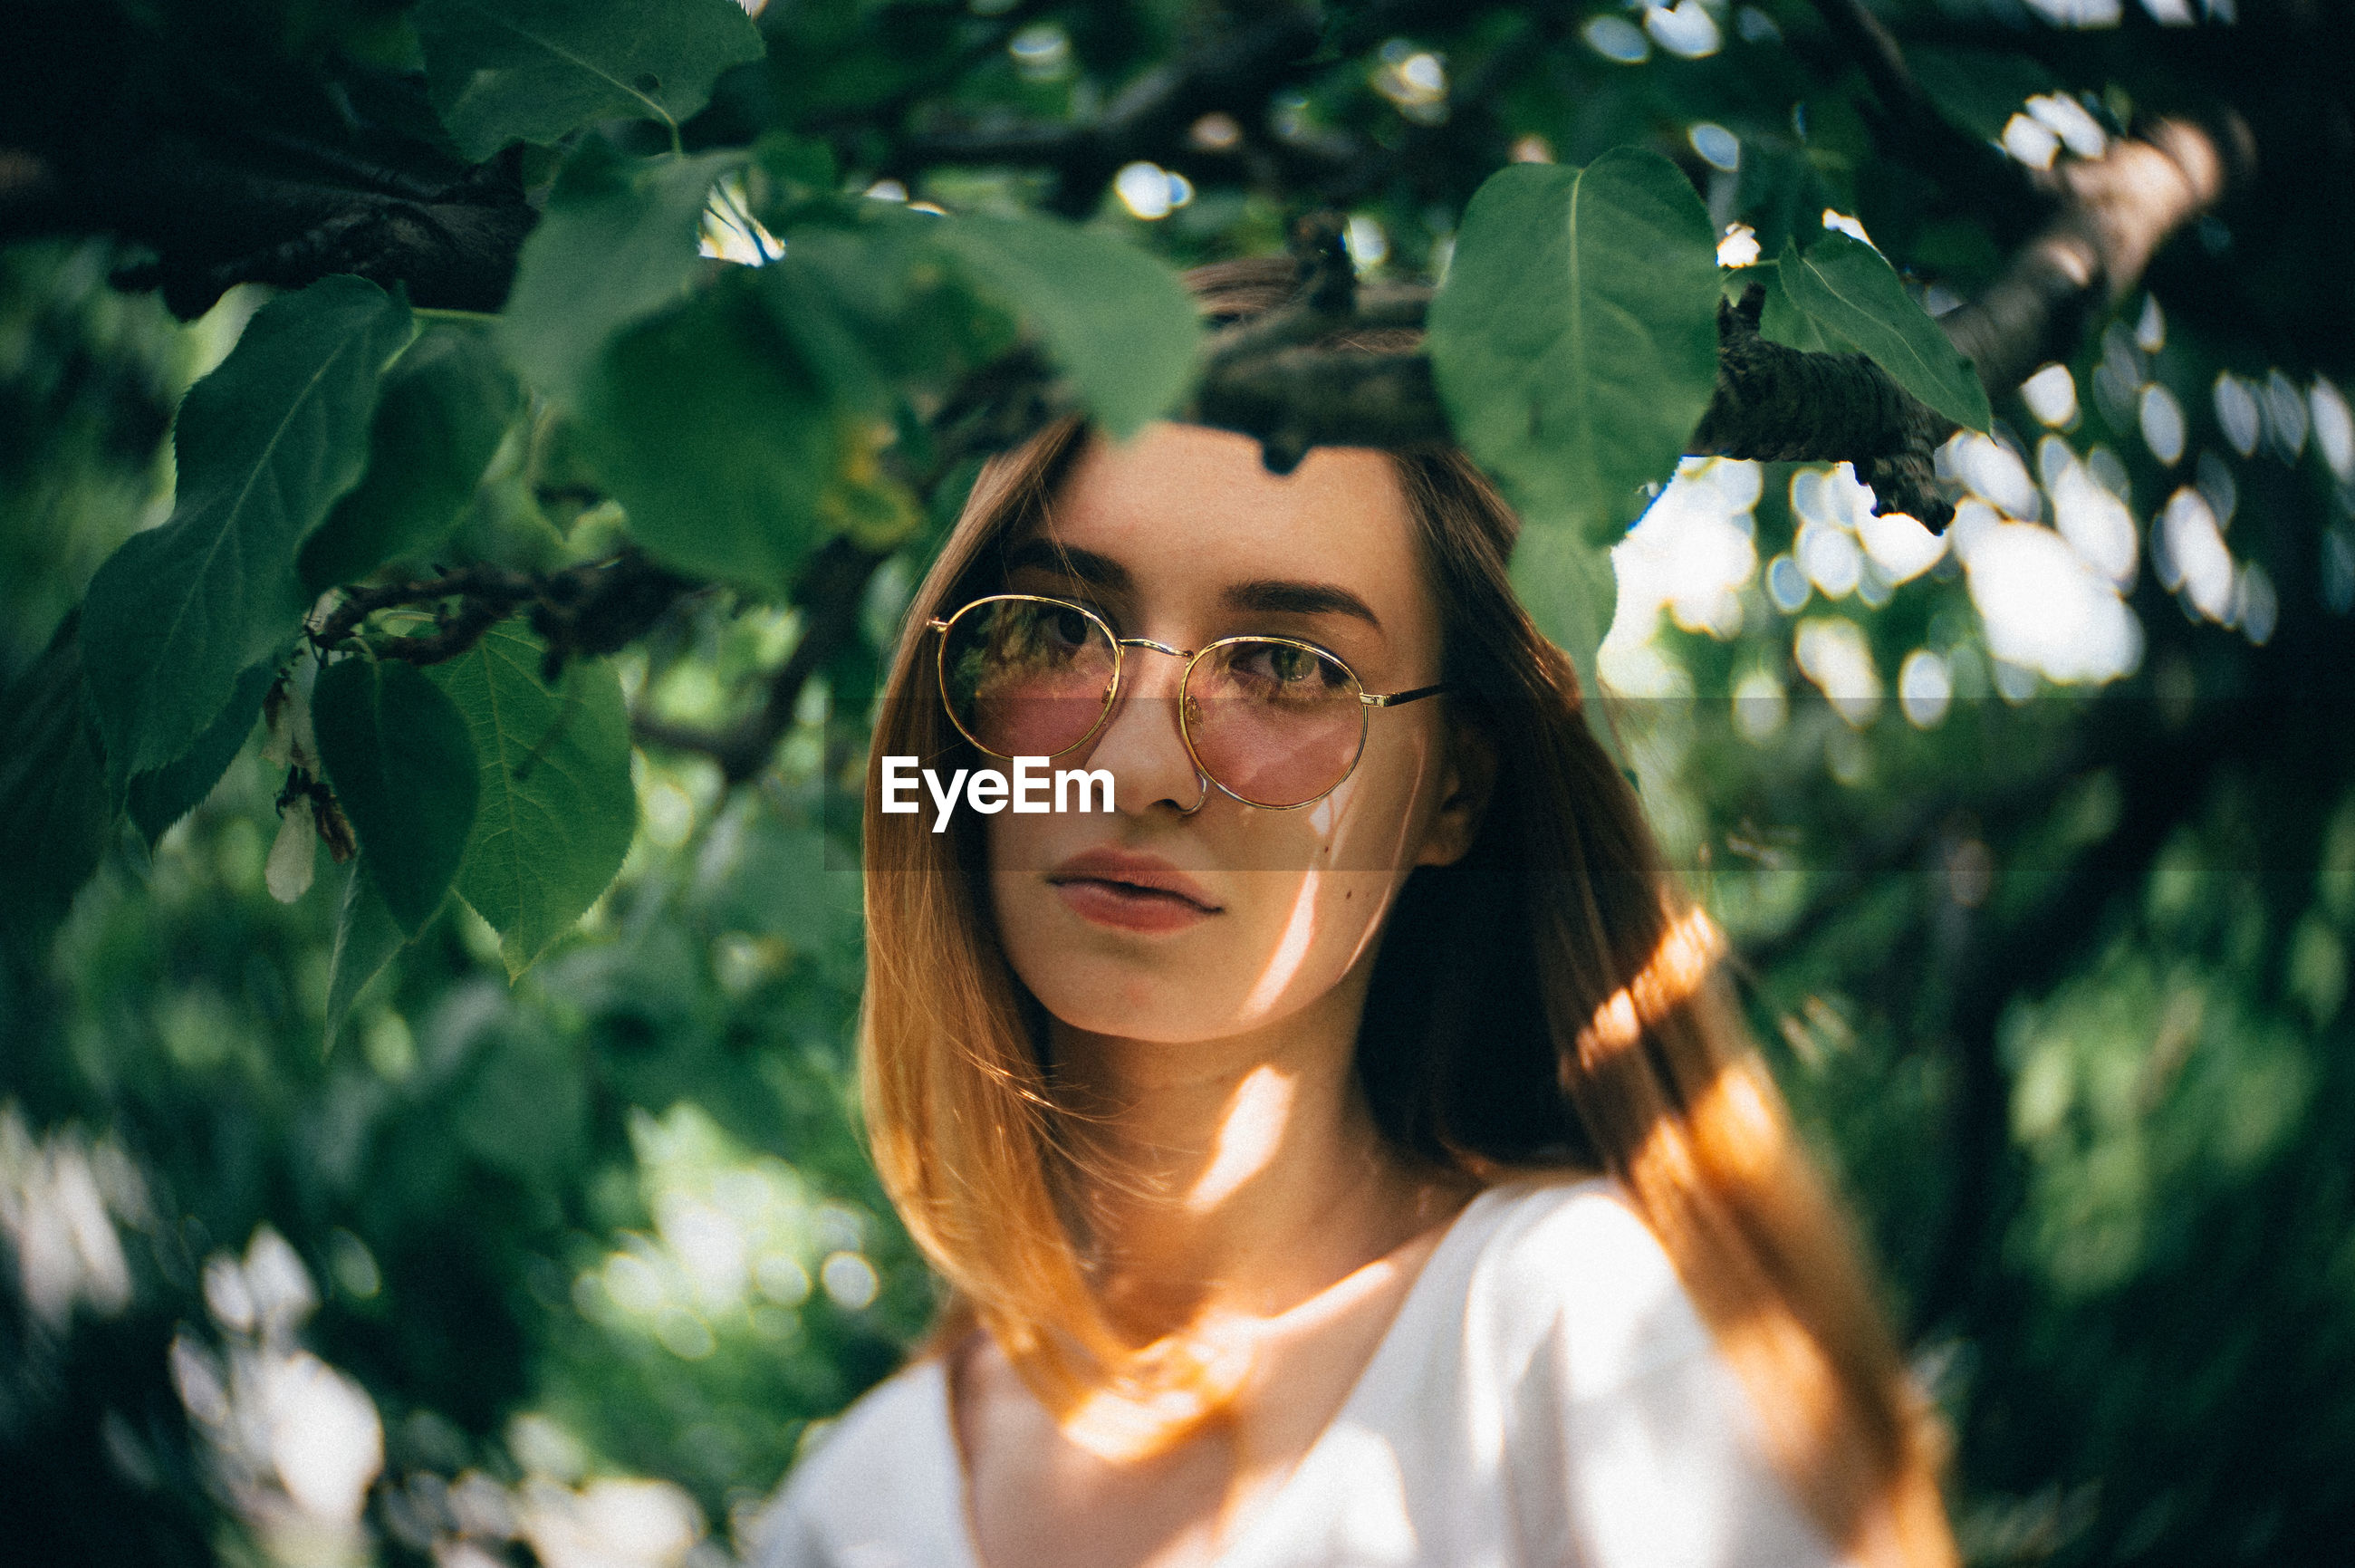 Portrait of young woman wearing sunglasses by leaves on branches